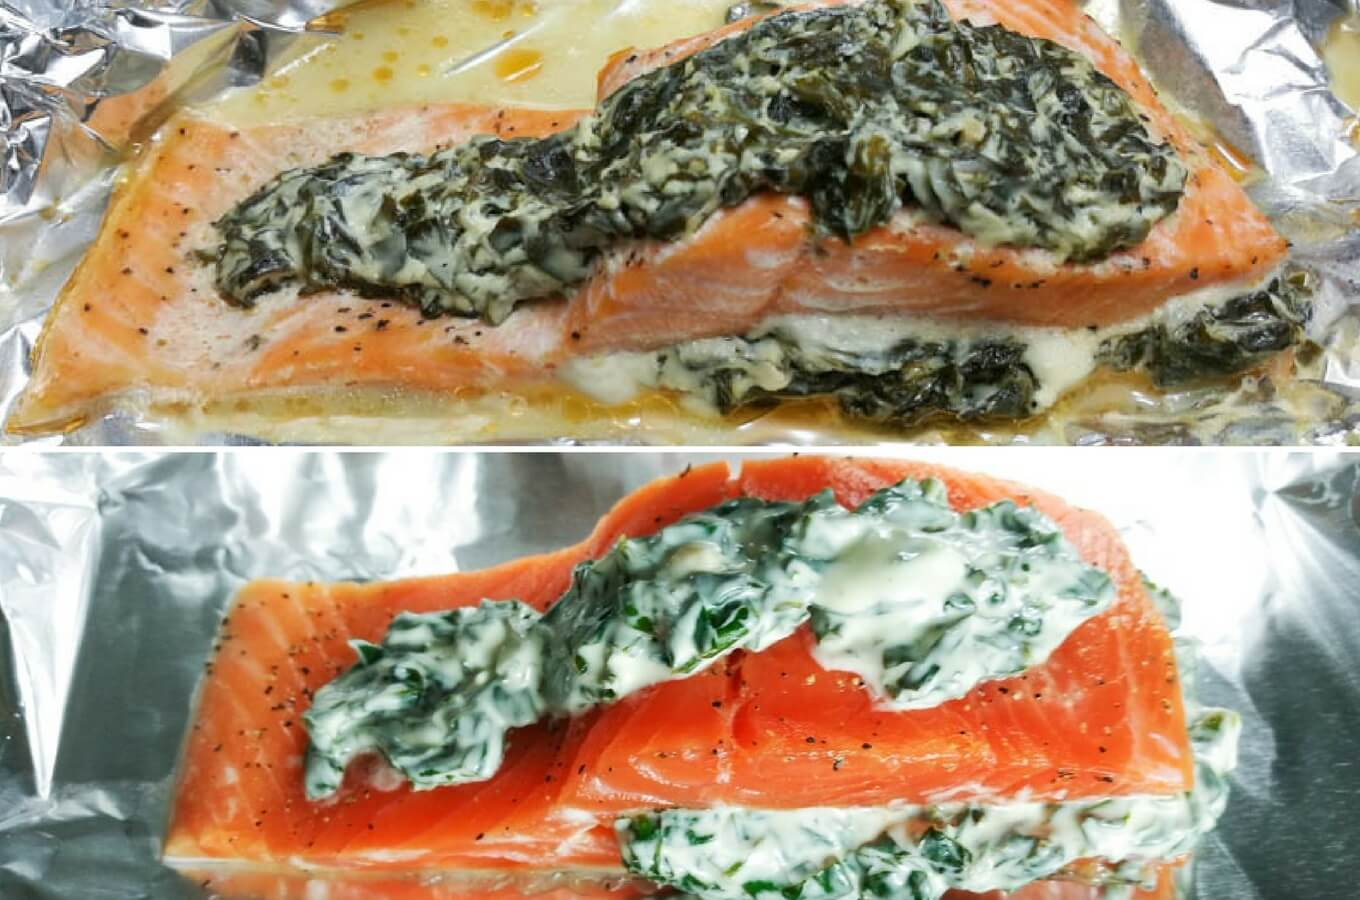 top photo: stuffed salmon with cream cheese cooked, bottom photo: stuffed salmon with cream cheese raw